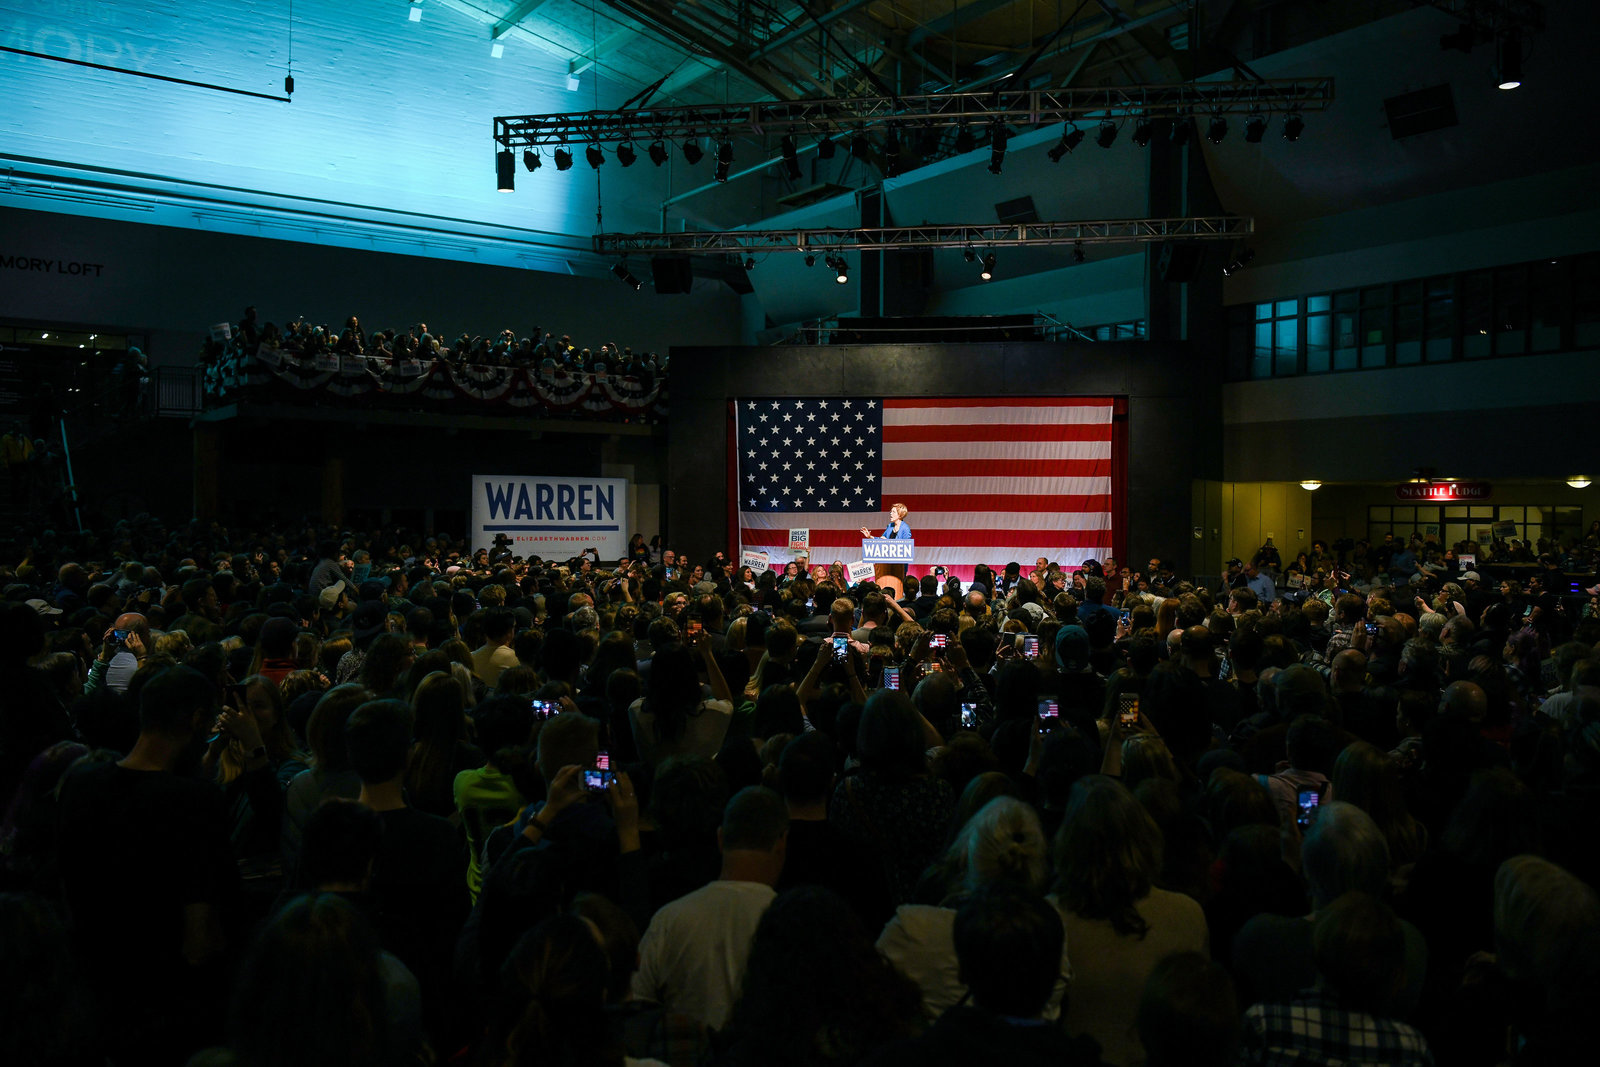 Elizabeth Warren rally crowd